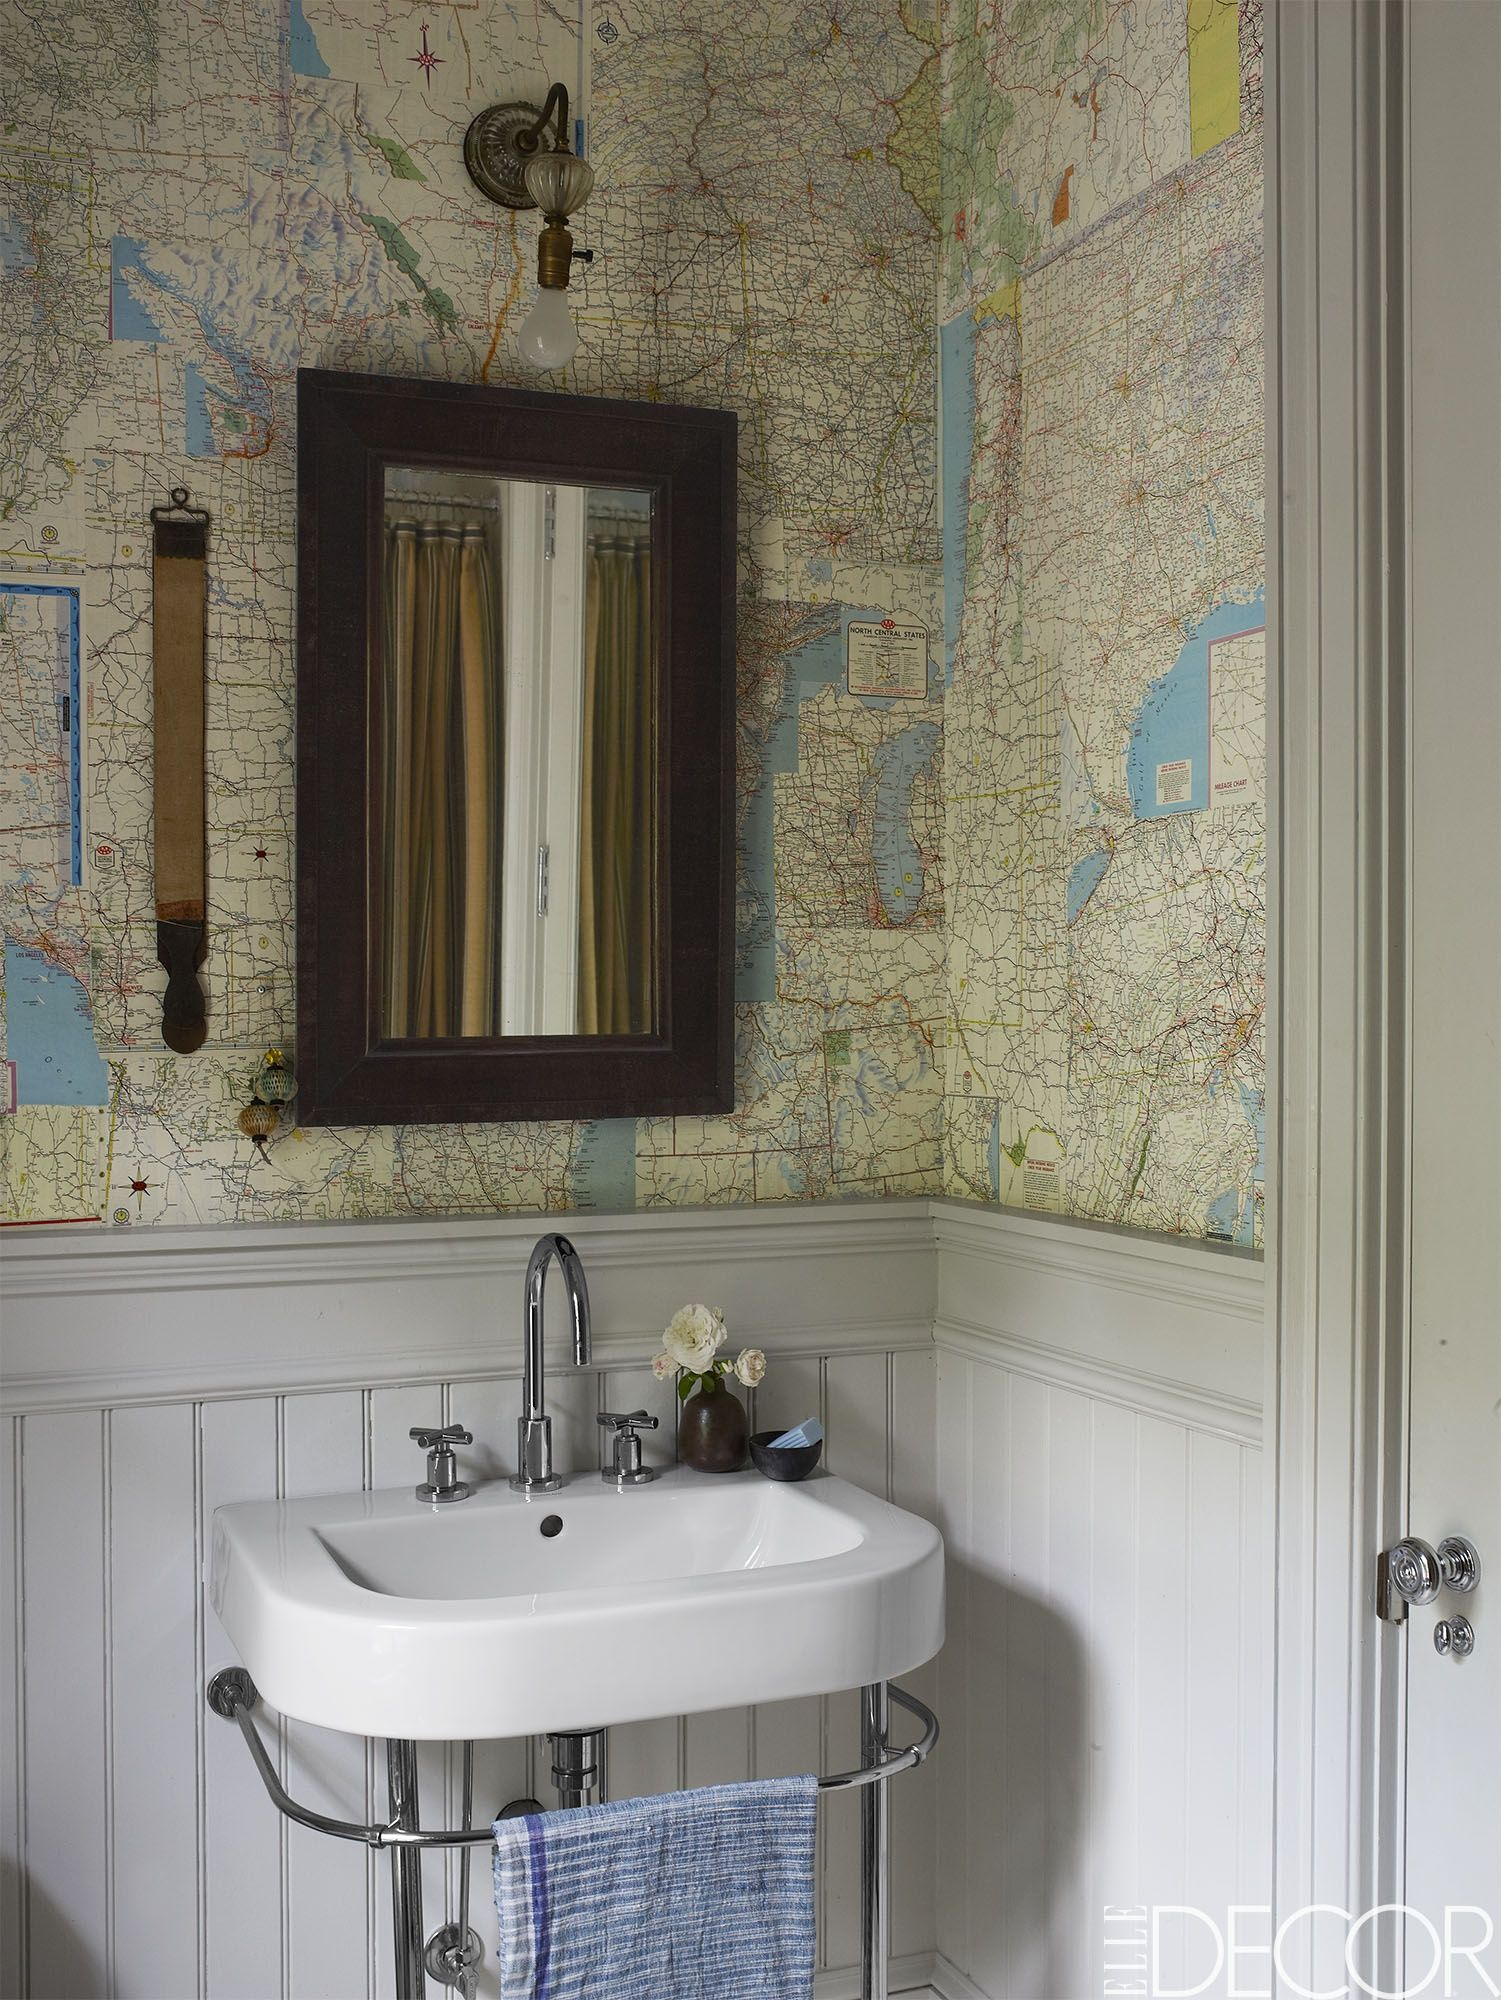 How to deal with the old bathroom 82